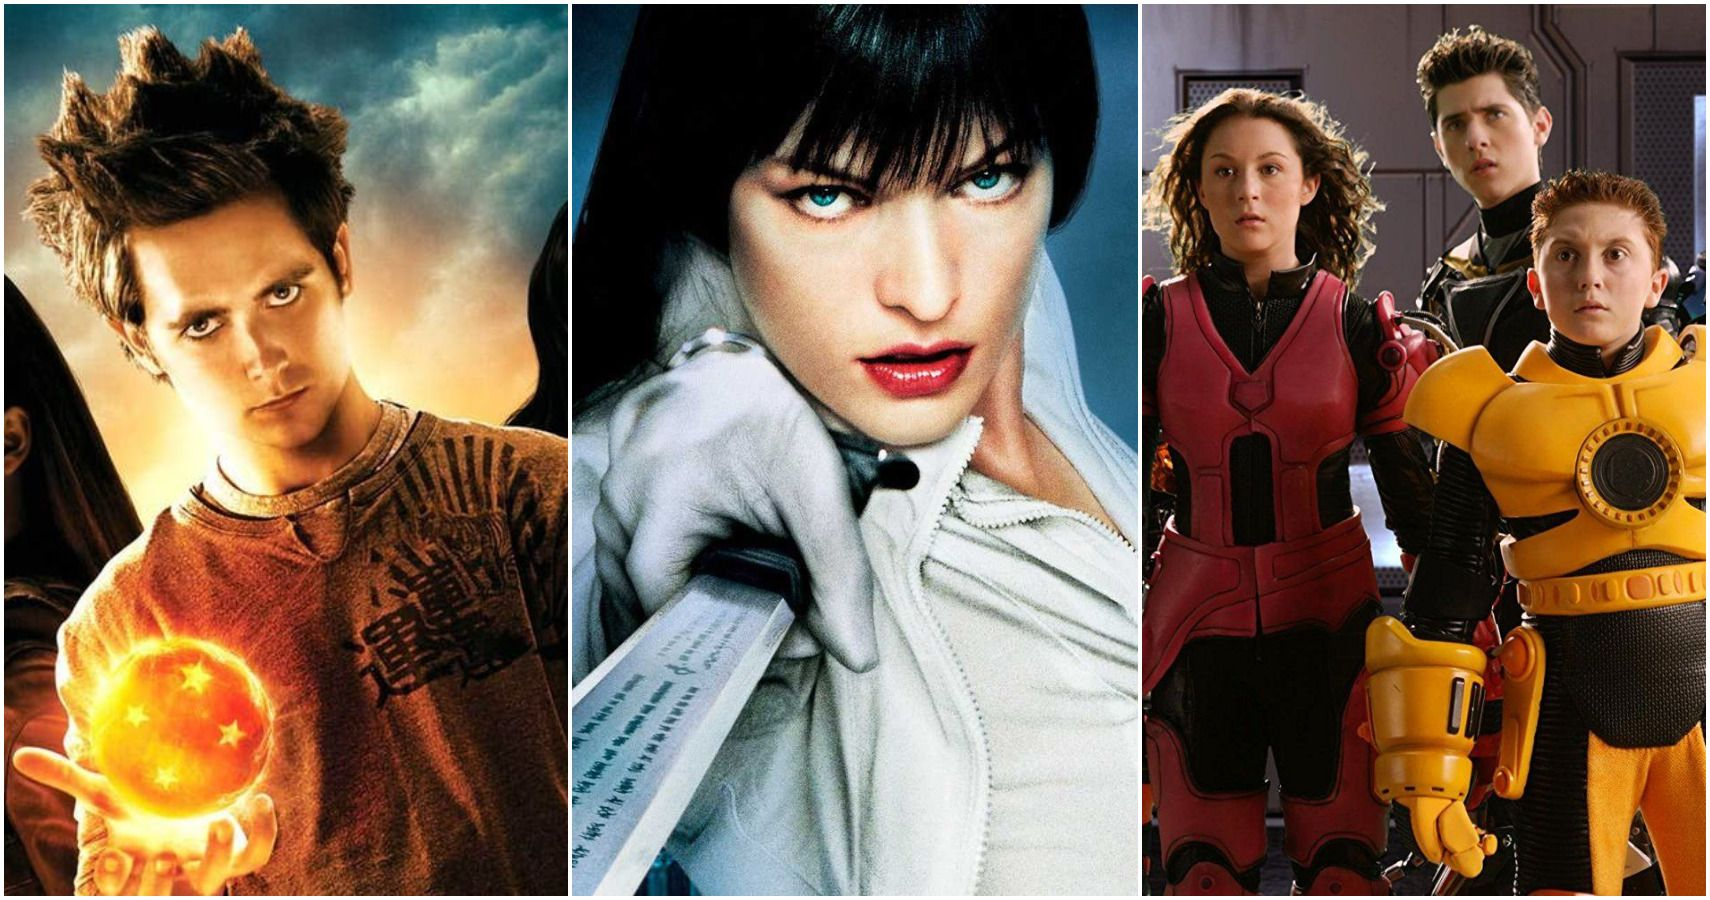 The 10 Worst Sci-Fi Action Movies Of The 2000s (According to IMDb)